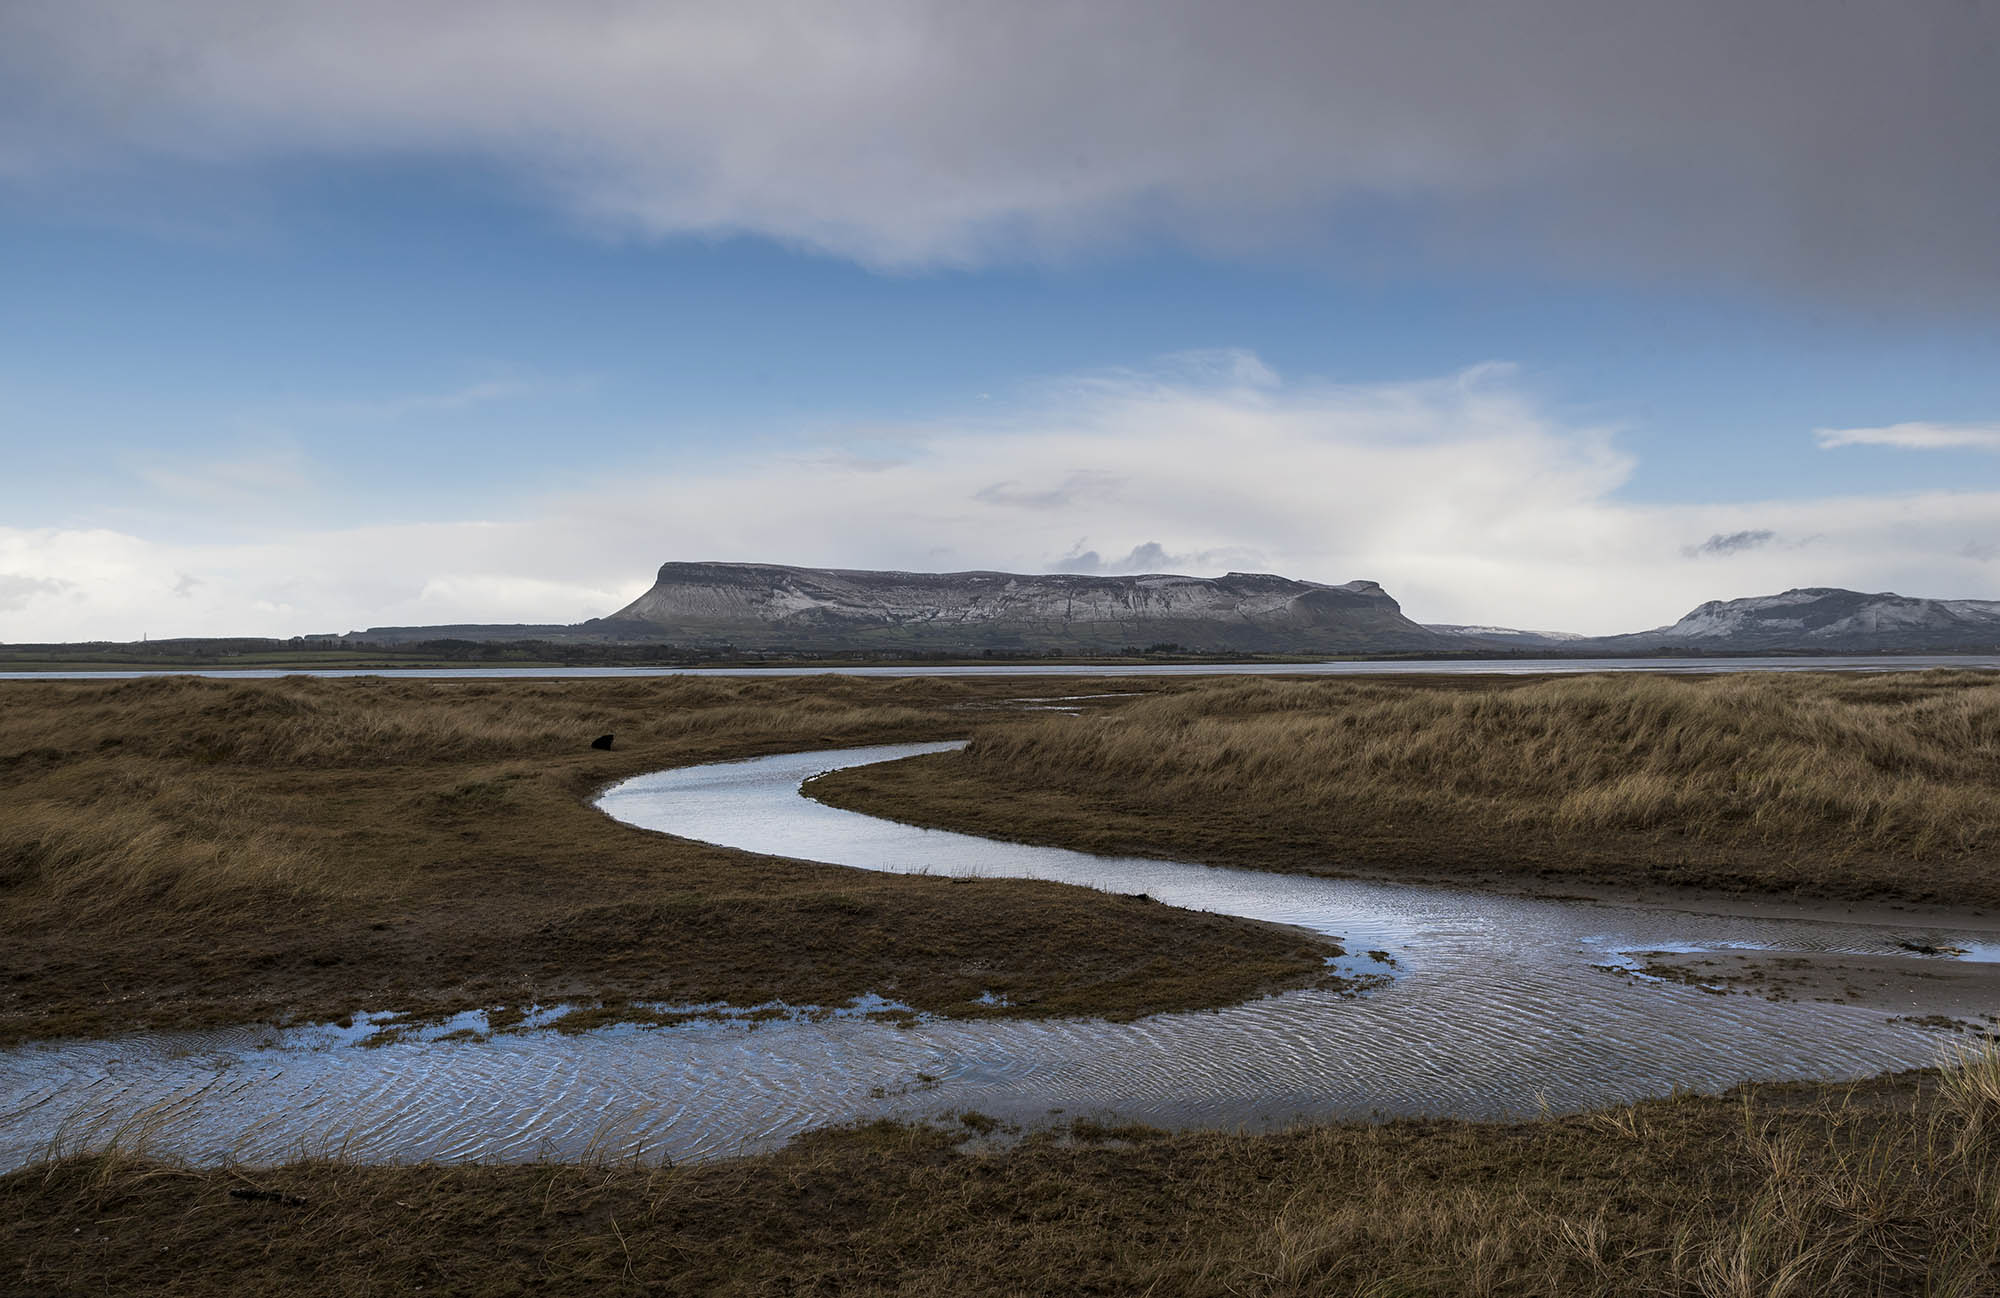 Benbulben & Dartry Mountains, Sligo